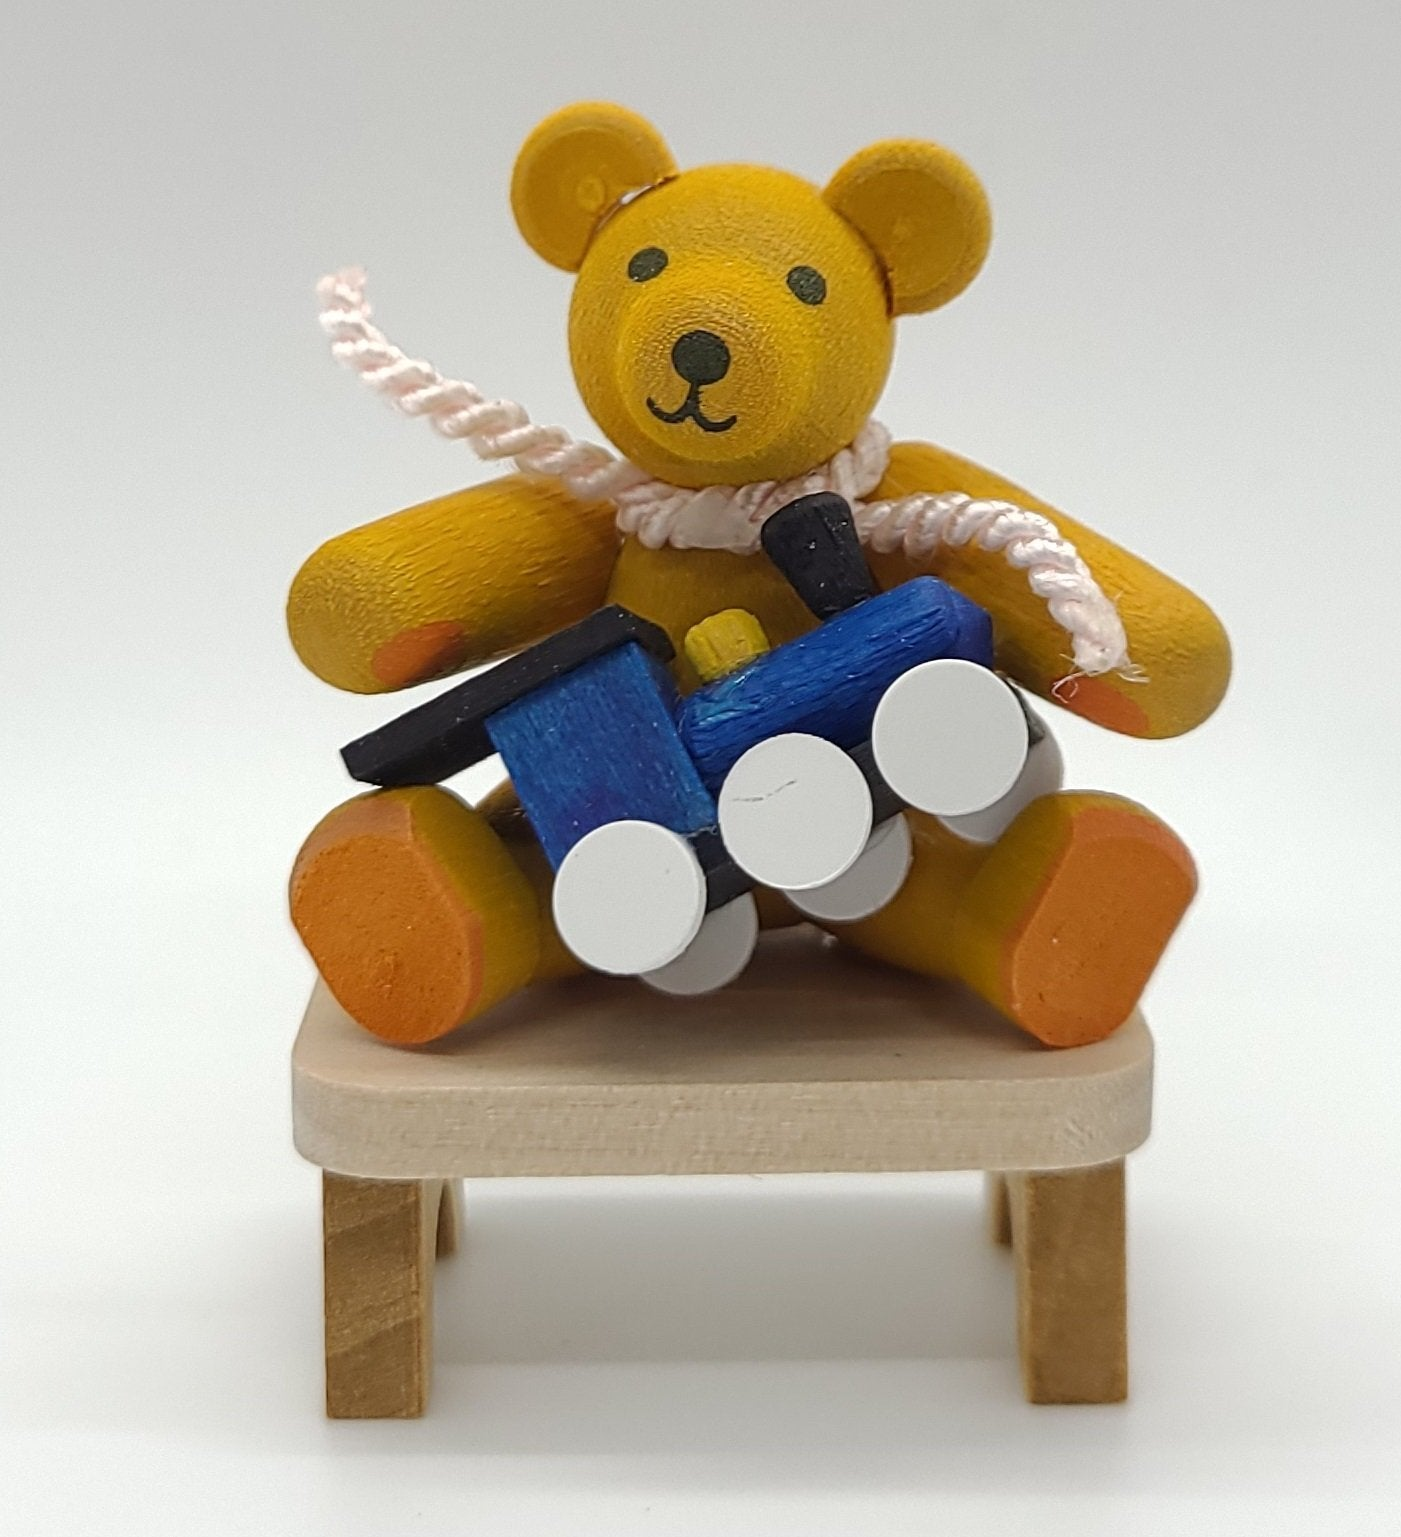 Handmade Yellow Bear with Toy on a Bench - Schmidt Christmas Market Christmas Decoration